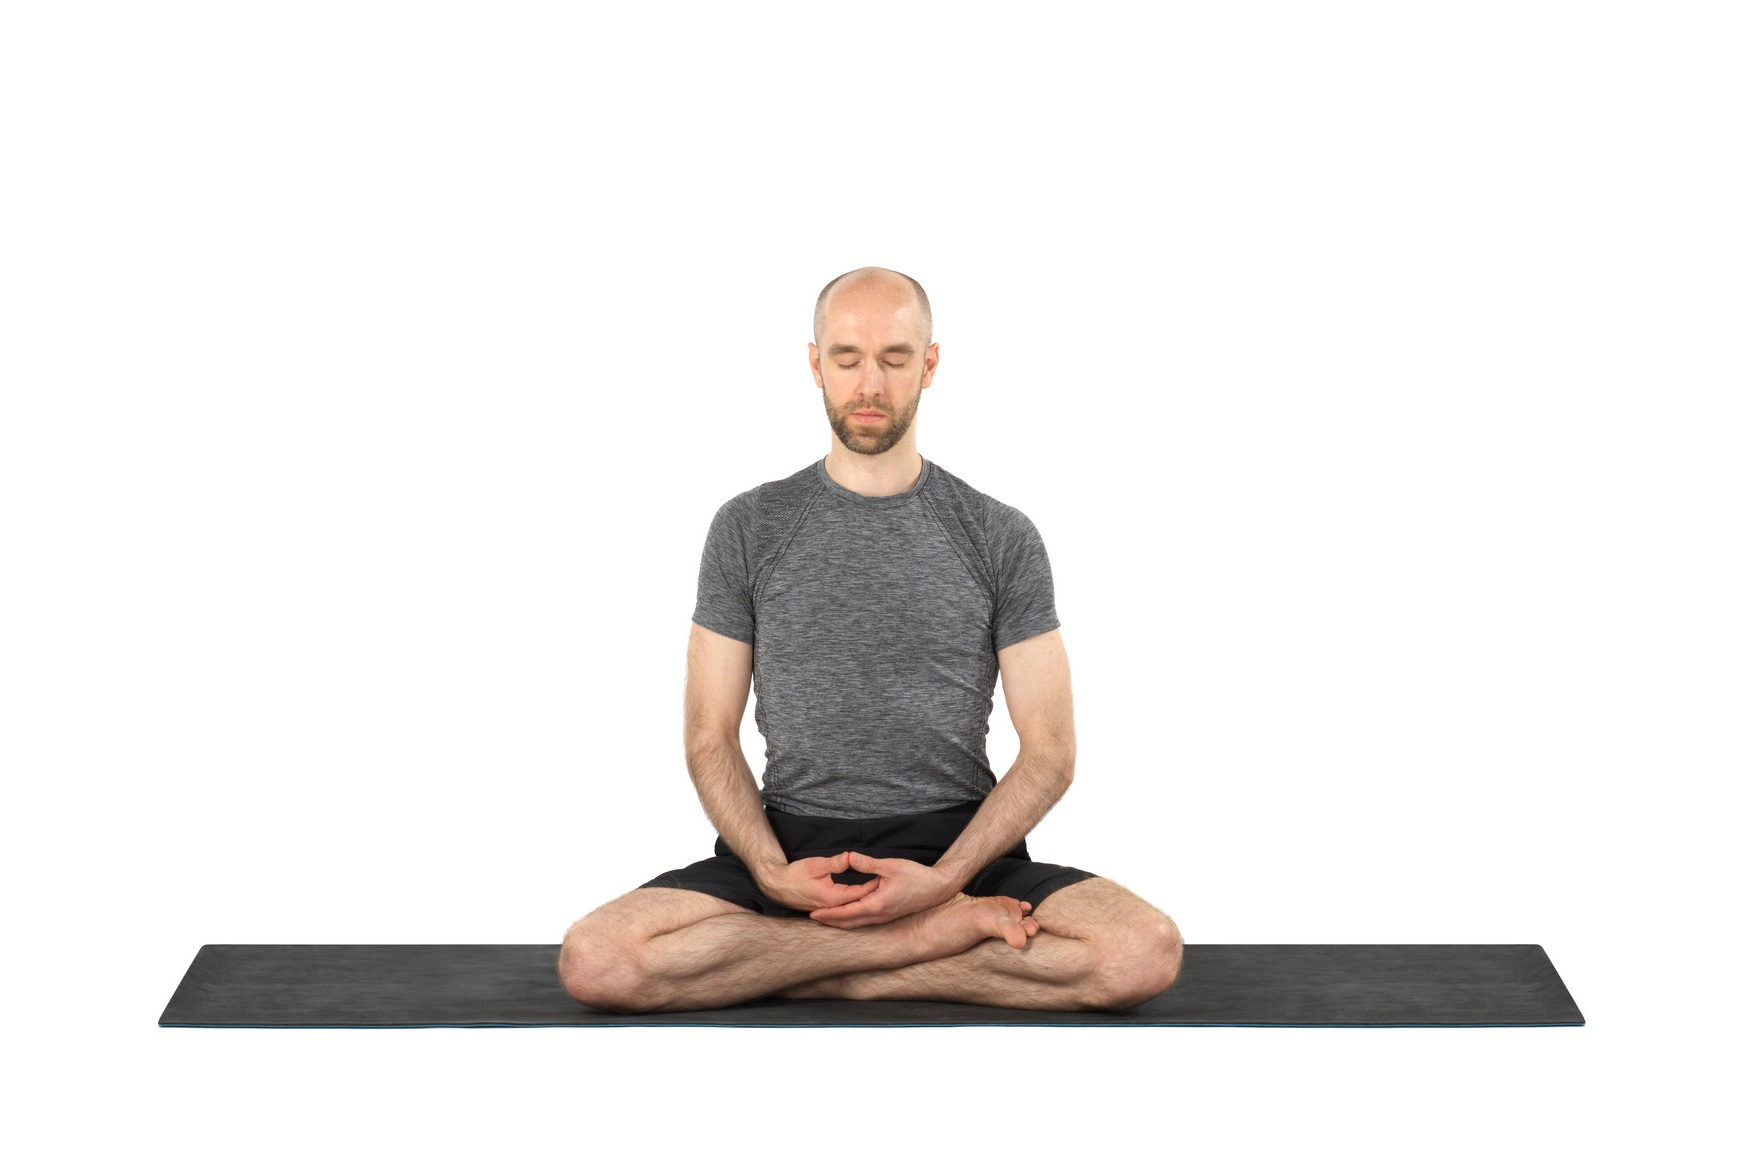 Mindful Meditation on the Koshas - This short mindfulness meditation is based around the pancha koshas - the different layers of the 'body' as outlined in the Taittiriya Upanishad (the physical layer, the energetic layer, the mental layer, the discriminative layer and the 'blissful' layer).It's particularly suitable for people who are newer to meditation - it's not too long and I provide plenty of guidance to (hopefully) keep the mind focussed.CLICK THE IMAGE TO LISTEN